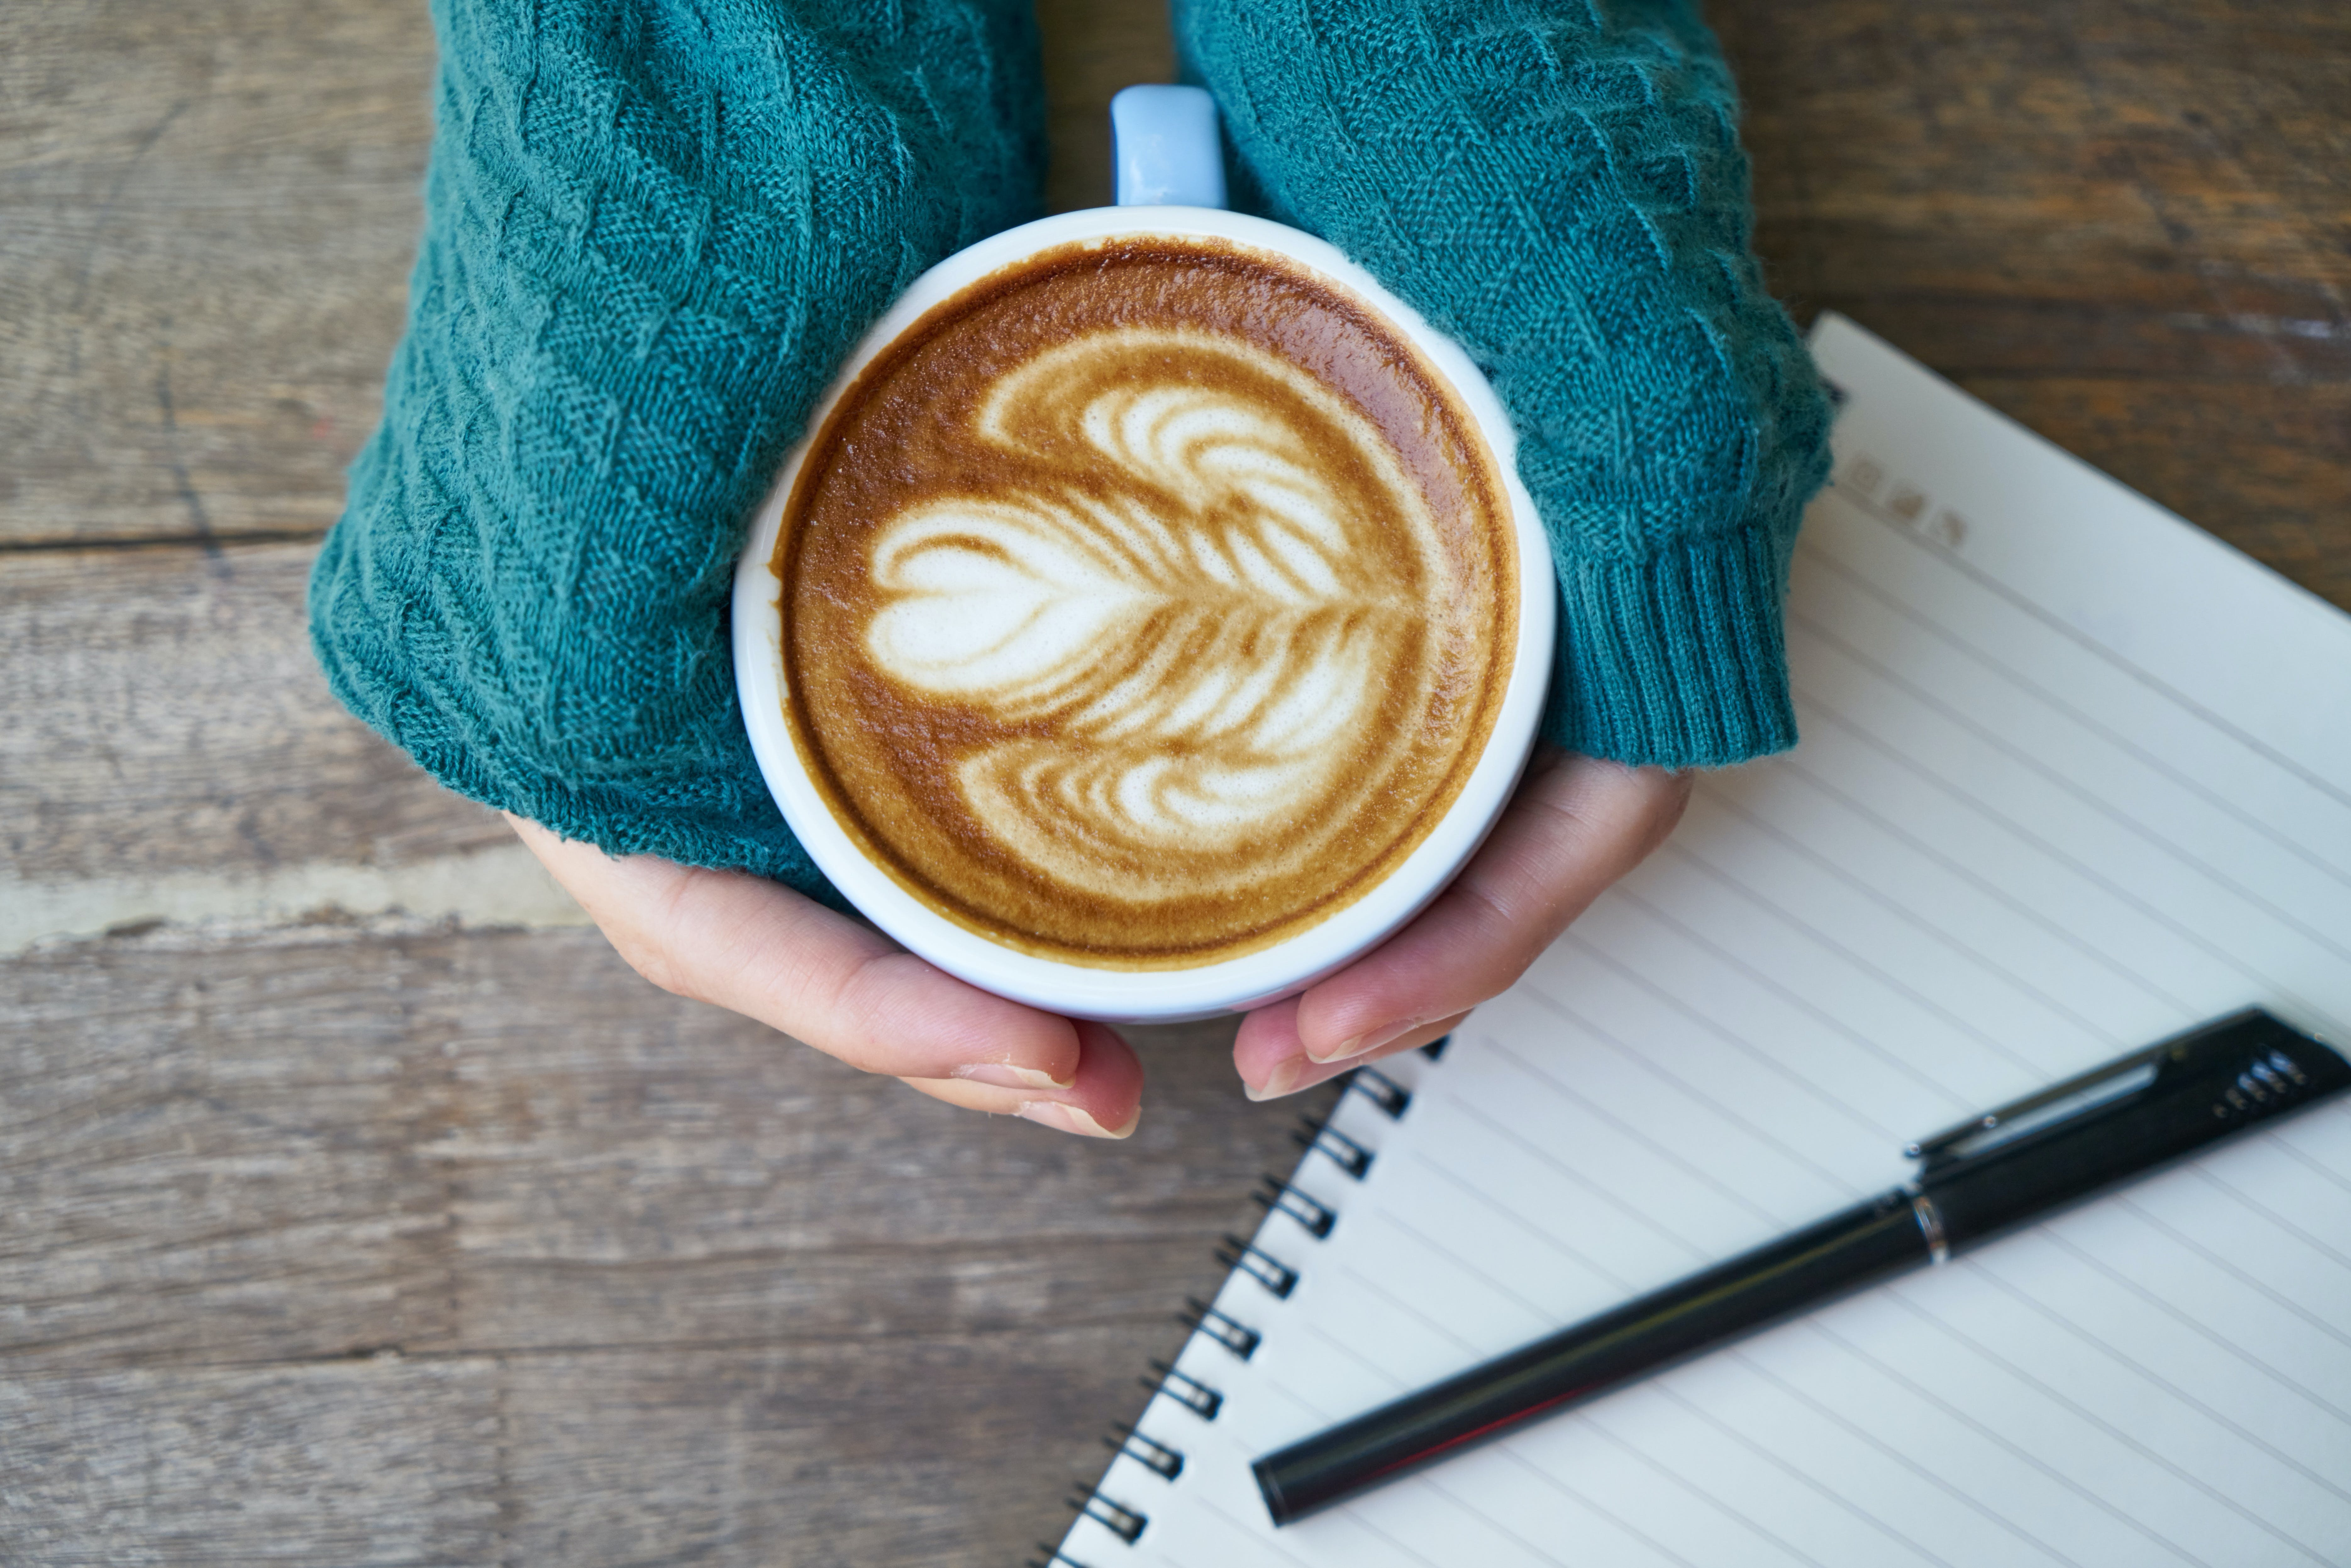 Person Holding Cup of Coffee Latte Near Notebook and Pen